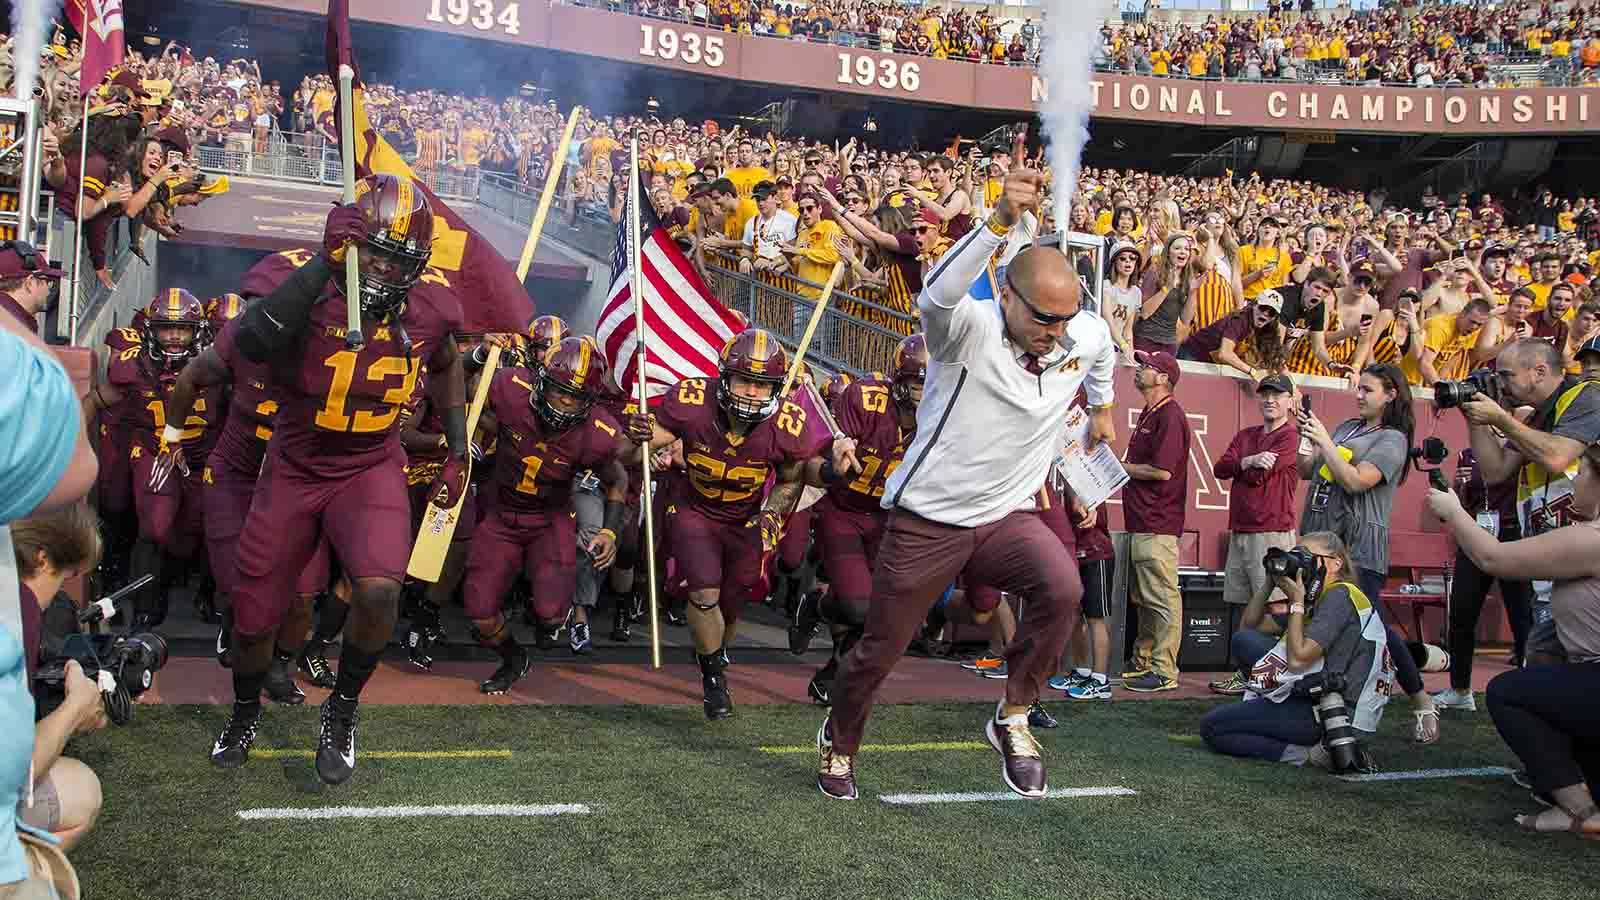 Aug 31, 2017; Minneapolis, MN, USA;  Minnesota Golden Gophers head coach P.J. Fleck leads his team onto the field before a game against the Buffalo Bulls at TCF Bank Stadium. Mandatory Credit: Jesse Johnson-USA TODAY Sports